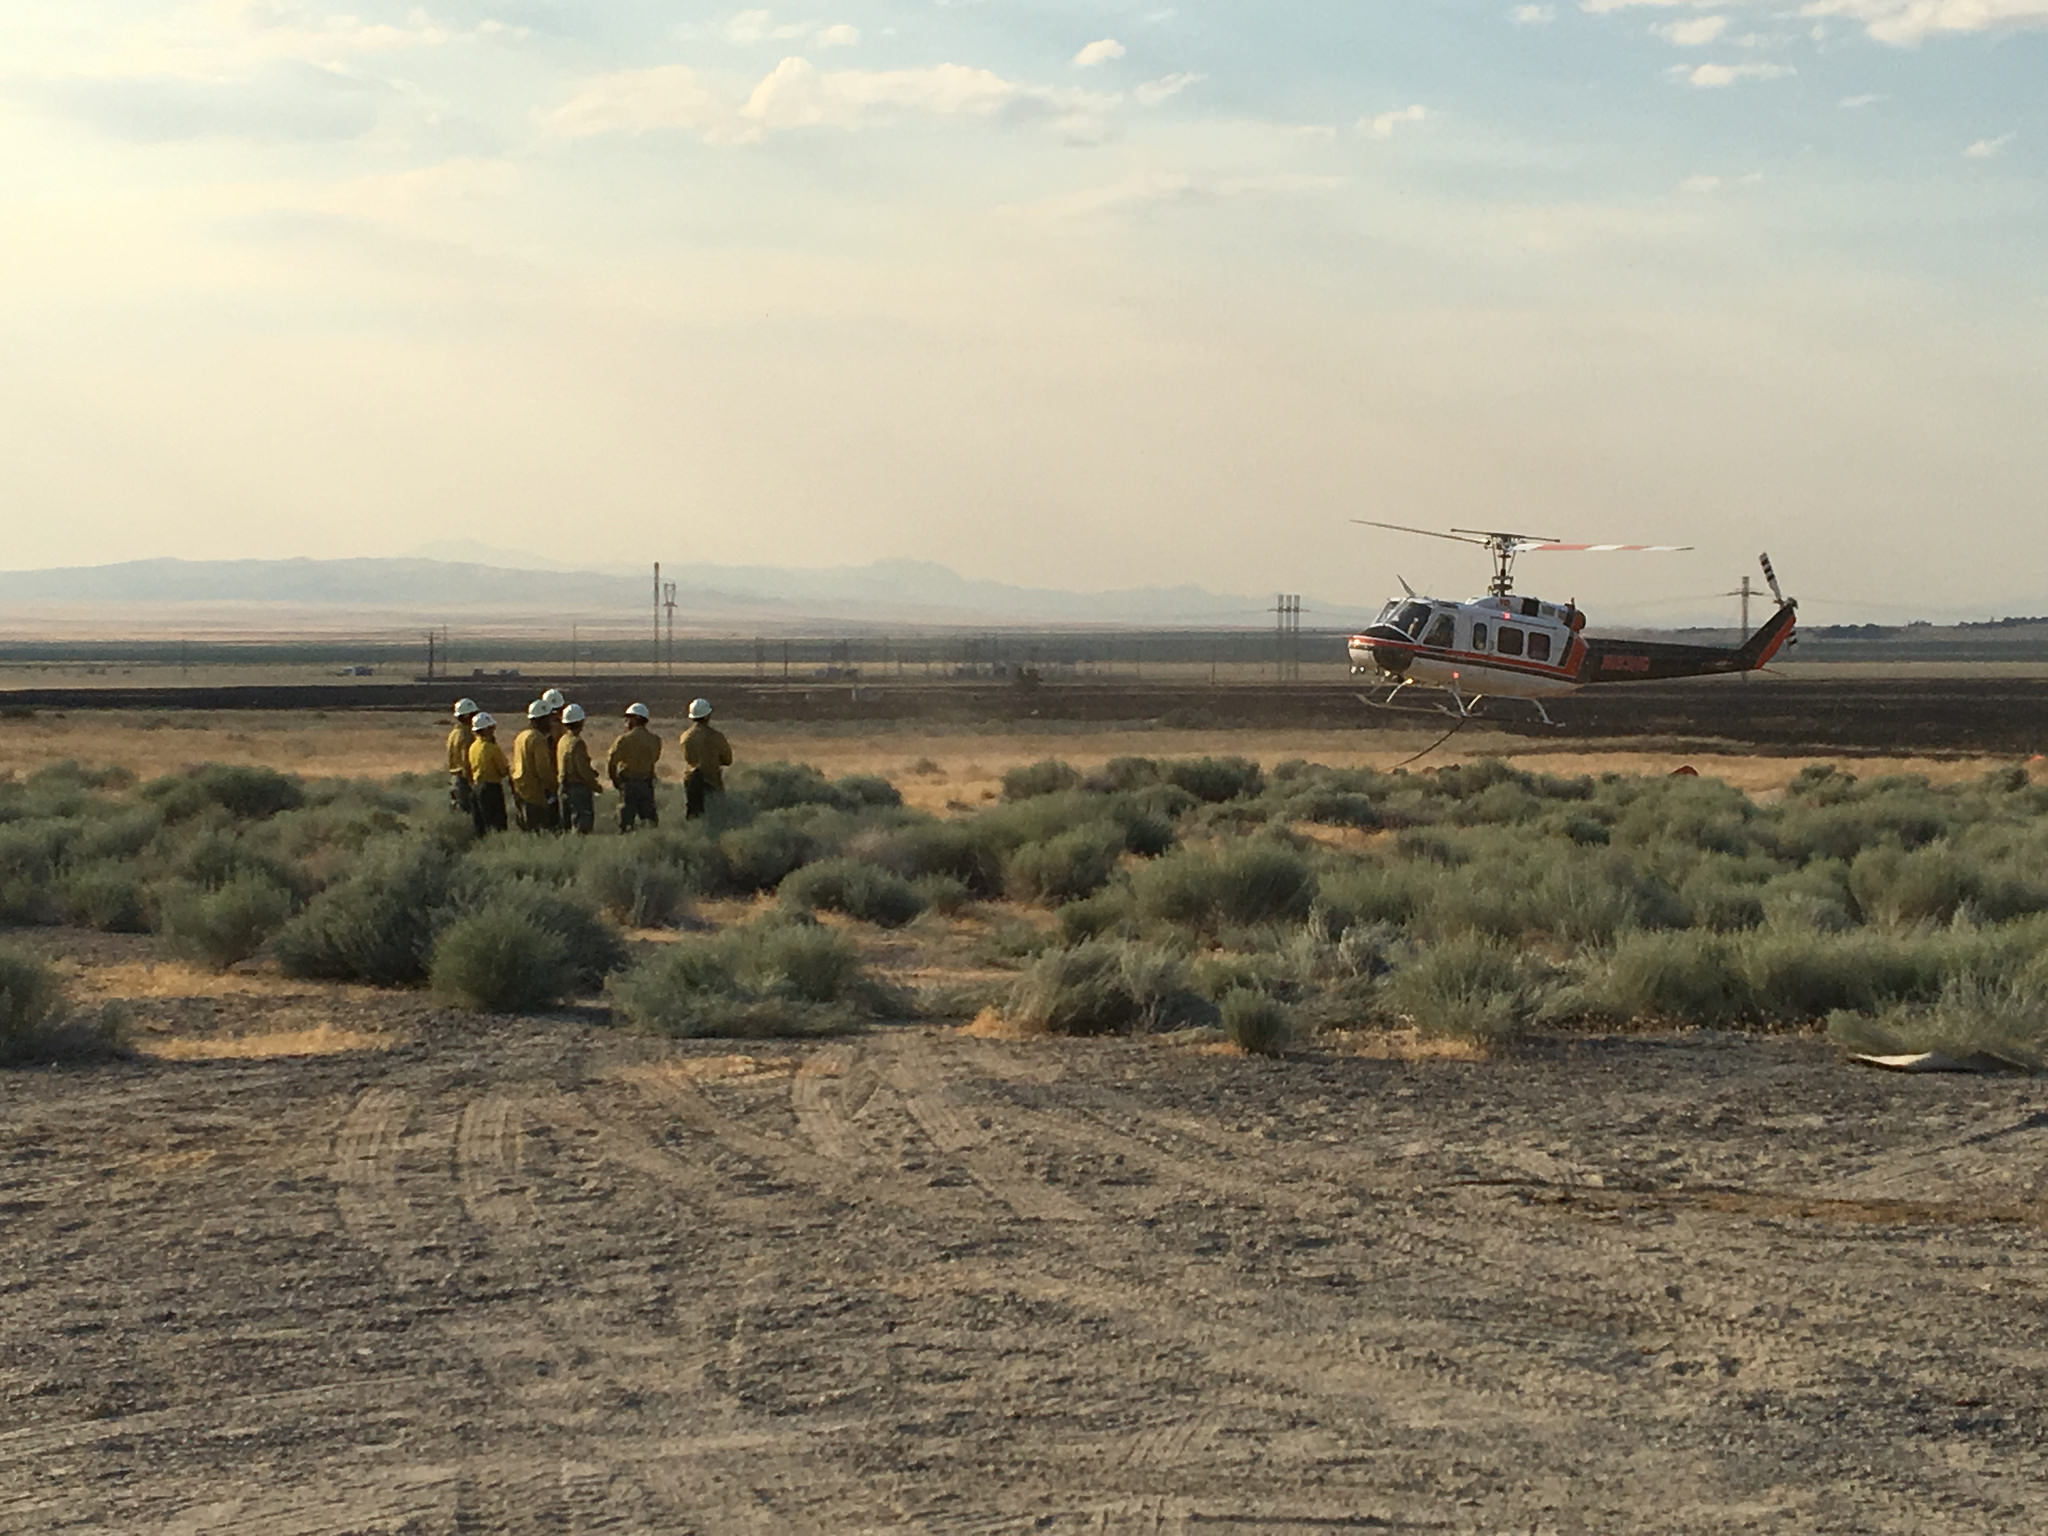 limerick-fire-that-started-july-3-2017-15-miles-northeast-of-lovelock-nevada_35785390045_o